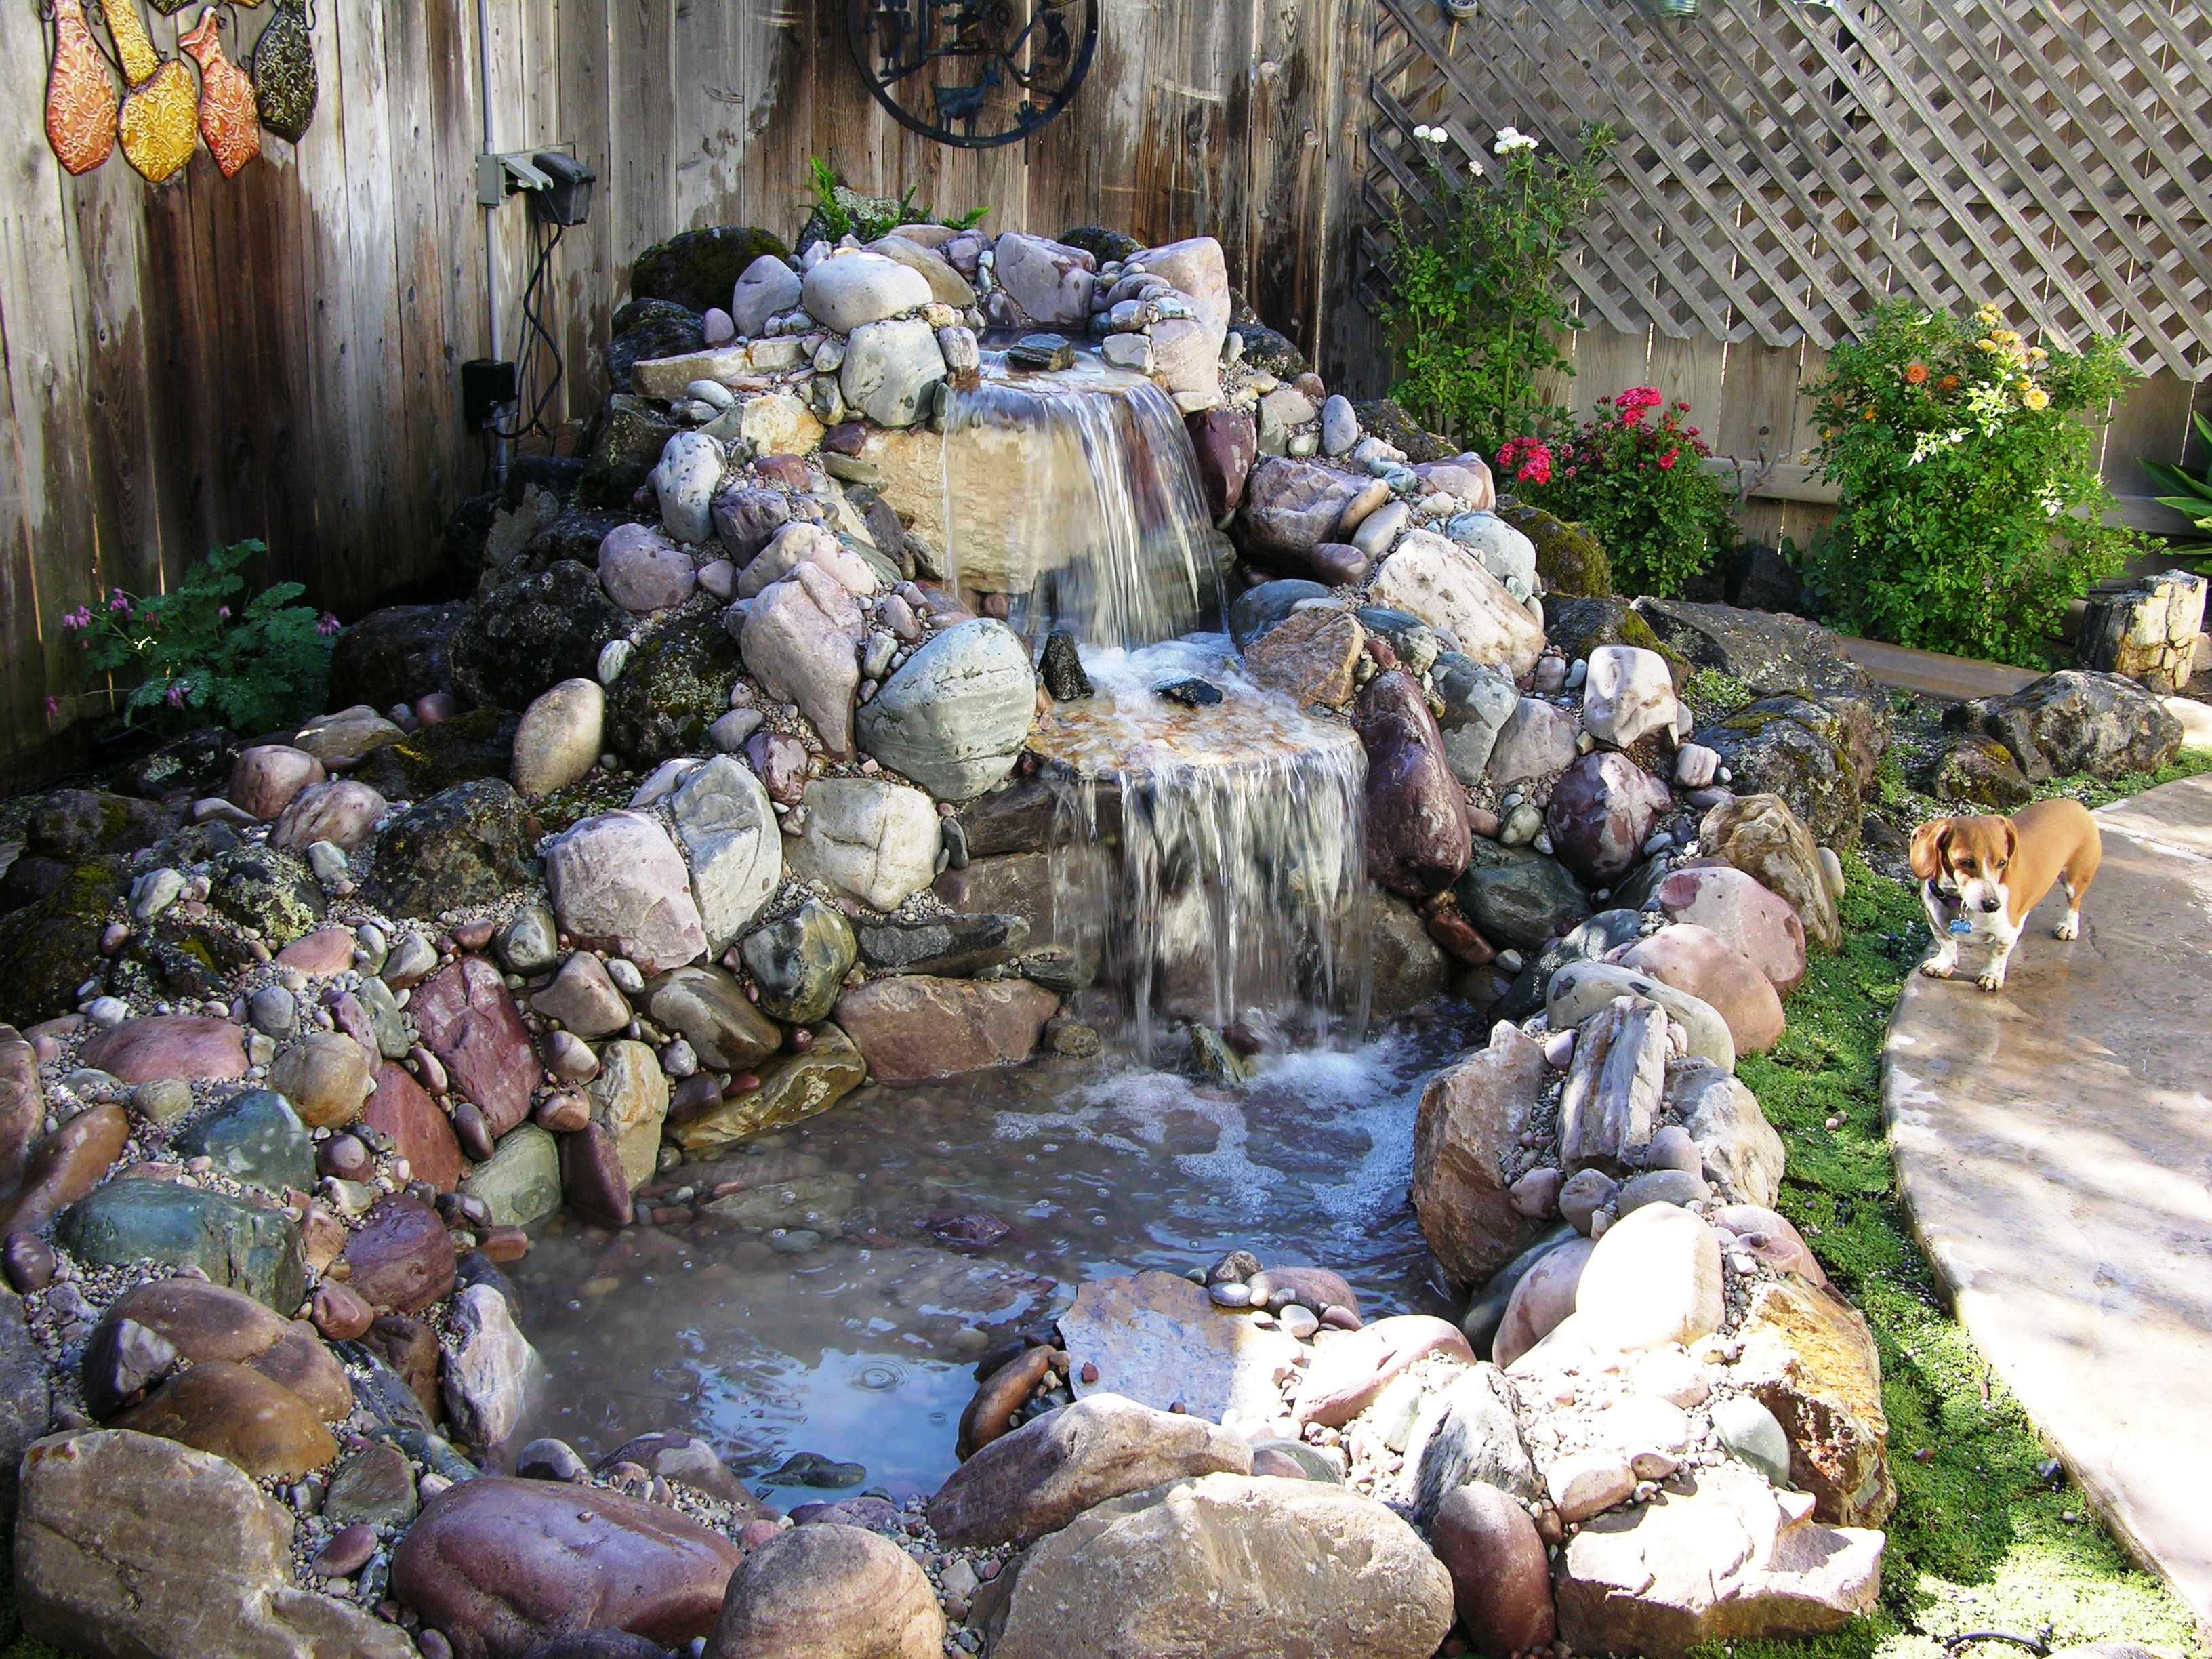 Waterfall Landscape Design Ideas natural stone waterfalls and landscaping ideas allendale nj Troop Oasis Waterfall Ideas Bringing Freshness Water Your Home